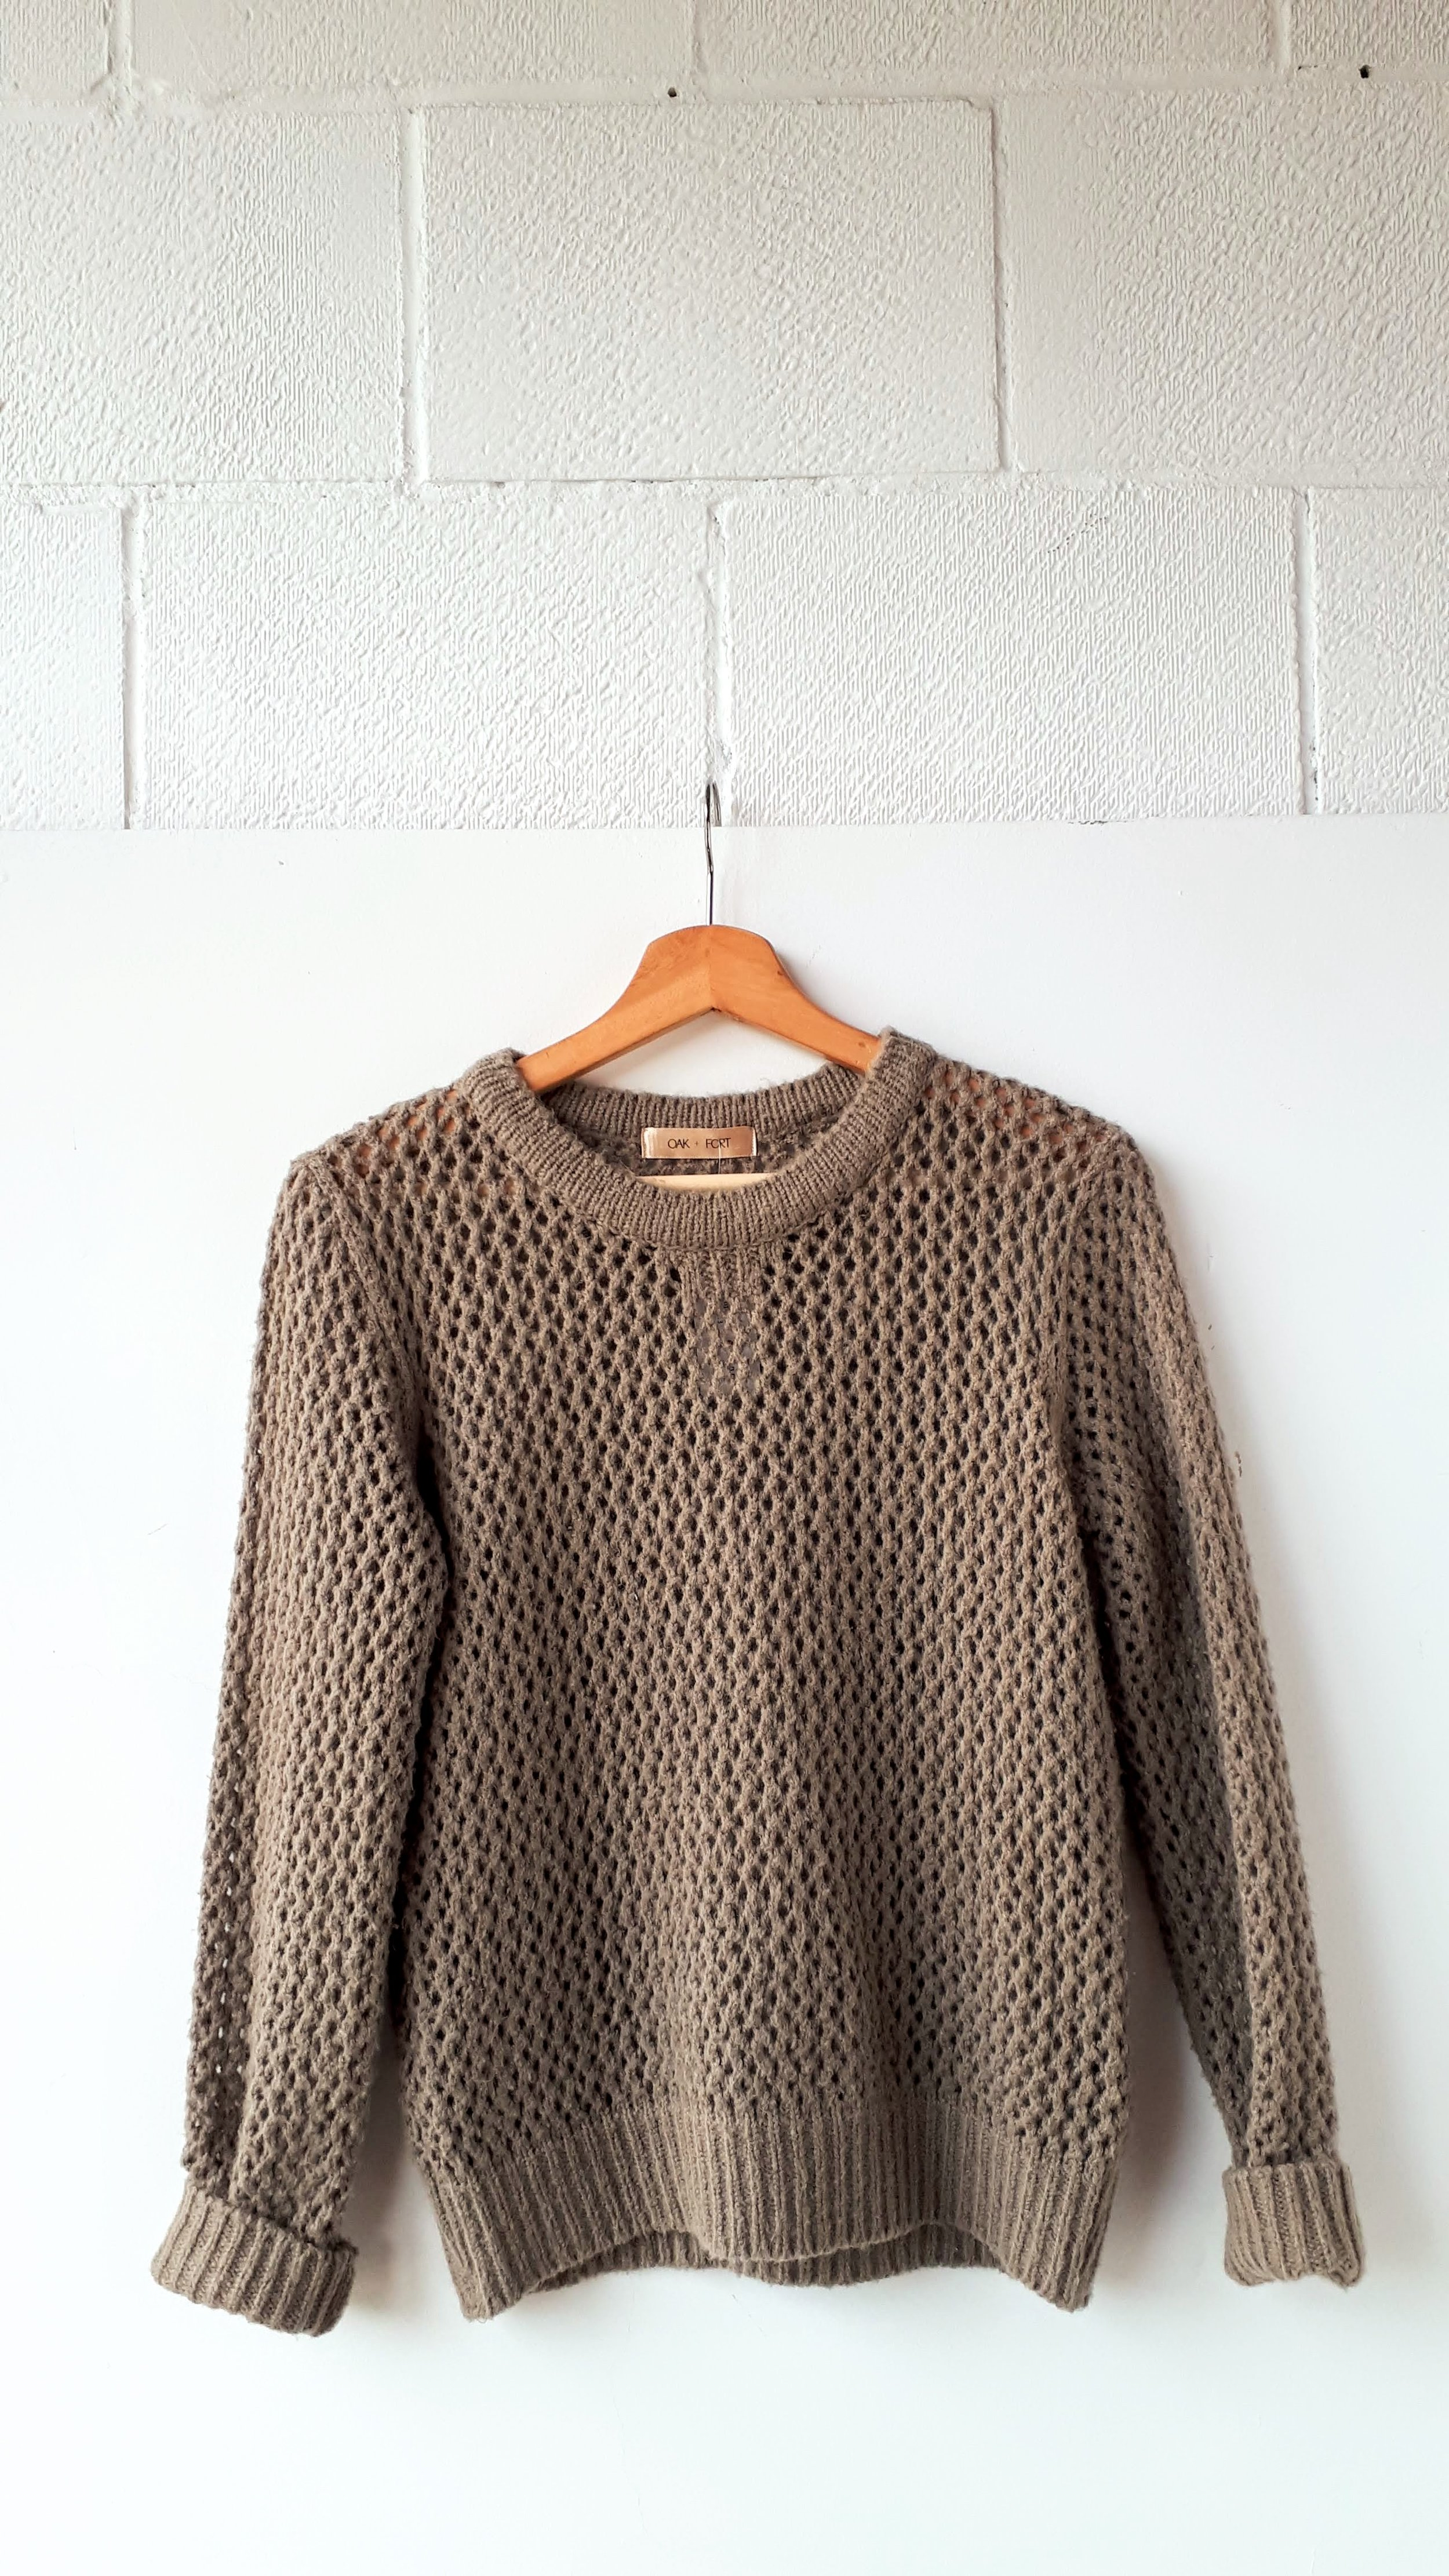 Oak + Fort; Size S, $30 (on sale for $15)